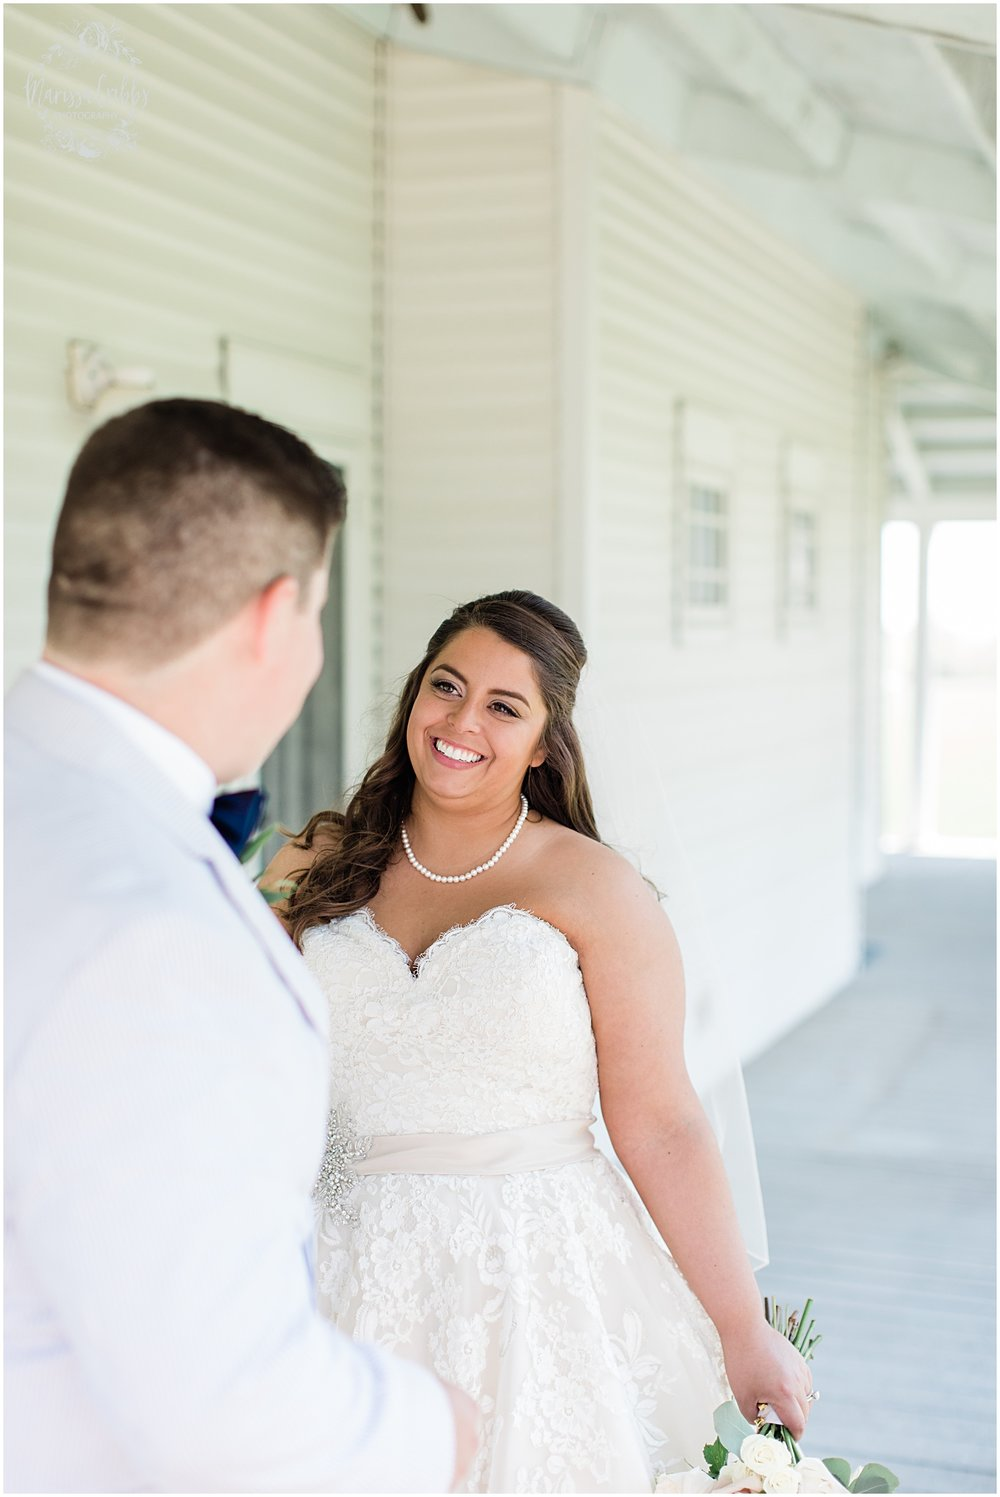 ANDREA & MICHAEL WEDDING | HICKORY CREEK RANCH | MARISSA CRIBBS PHOTOGRAPHY_4843.jpg